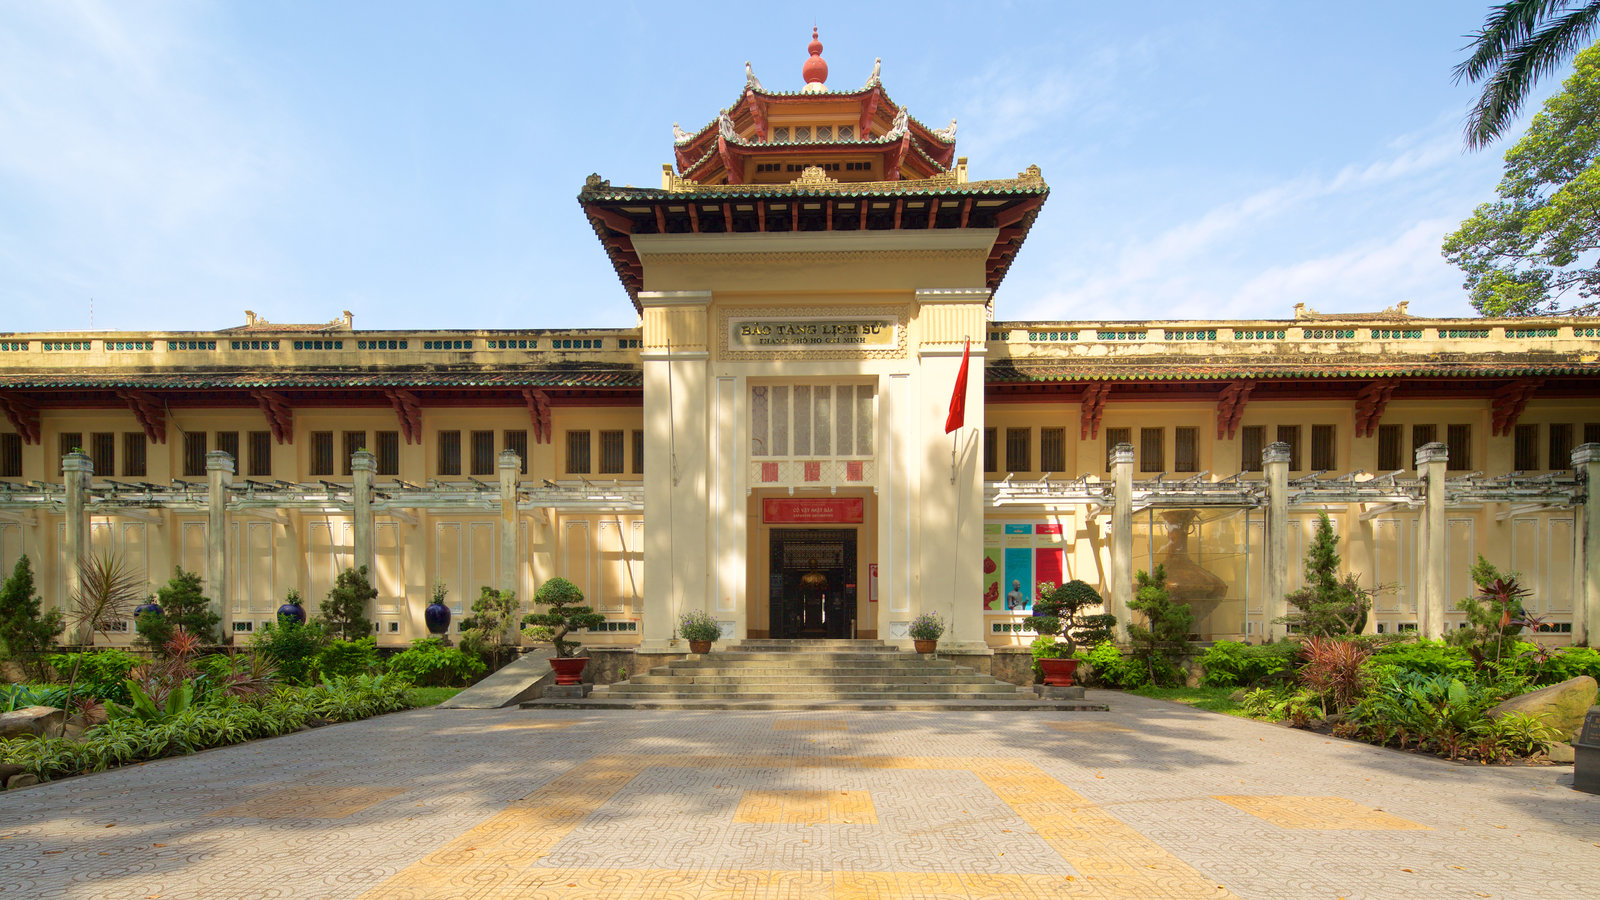 Vietnam National History Museum Ho Chi Minh City, Historic Buildings Pictures: View Images of Vietnam National ...